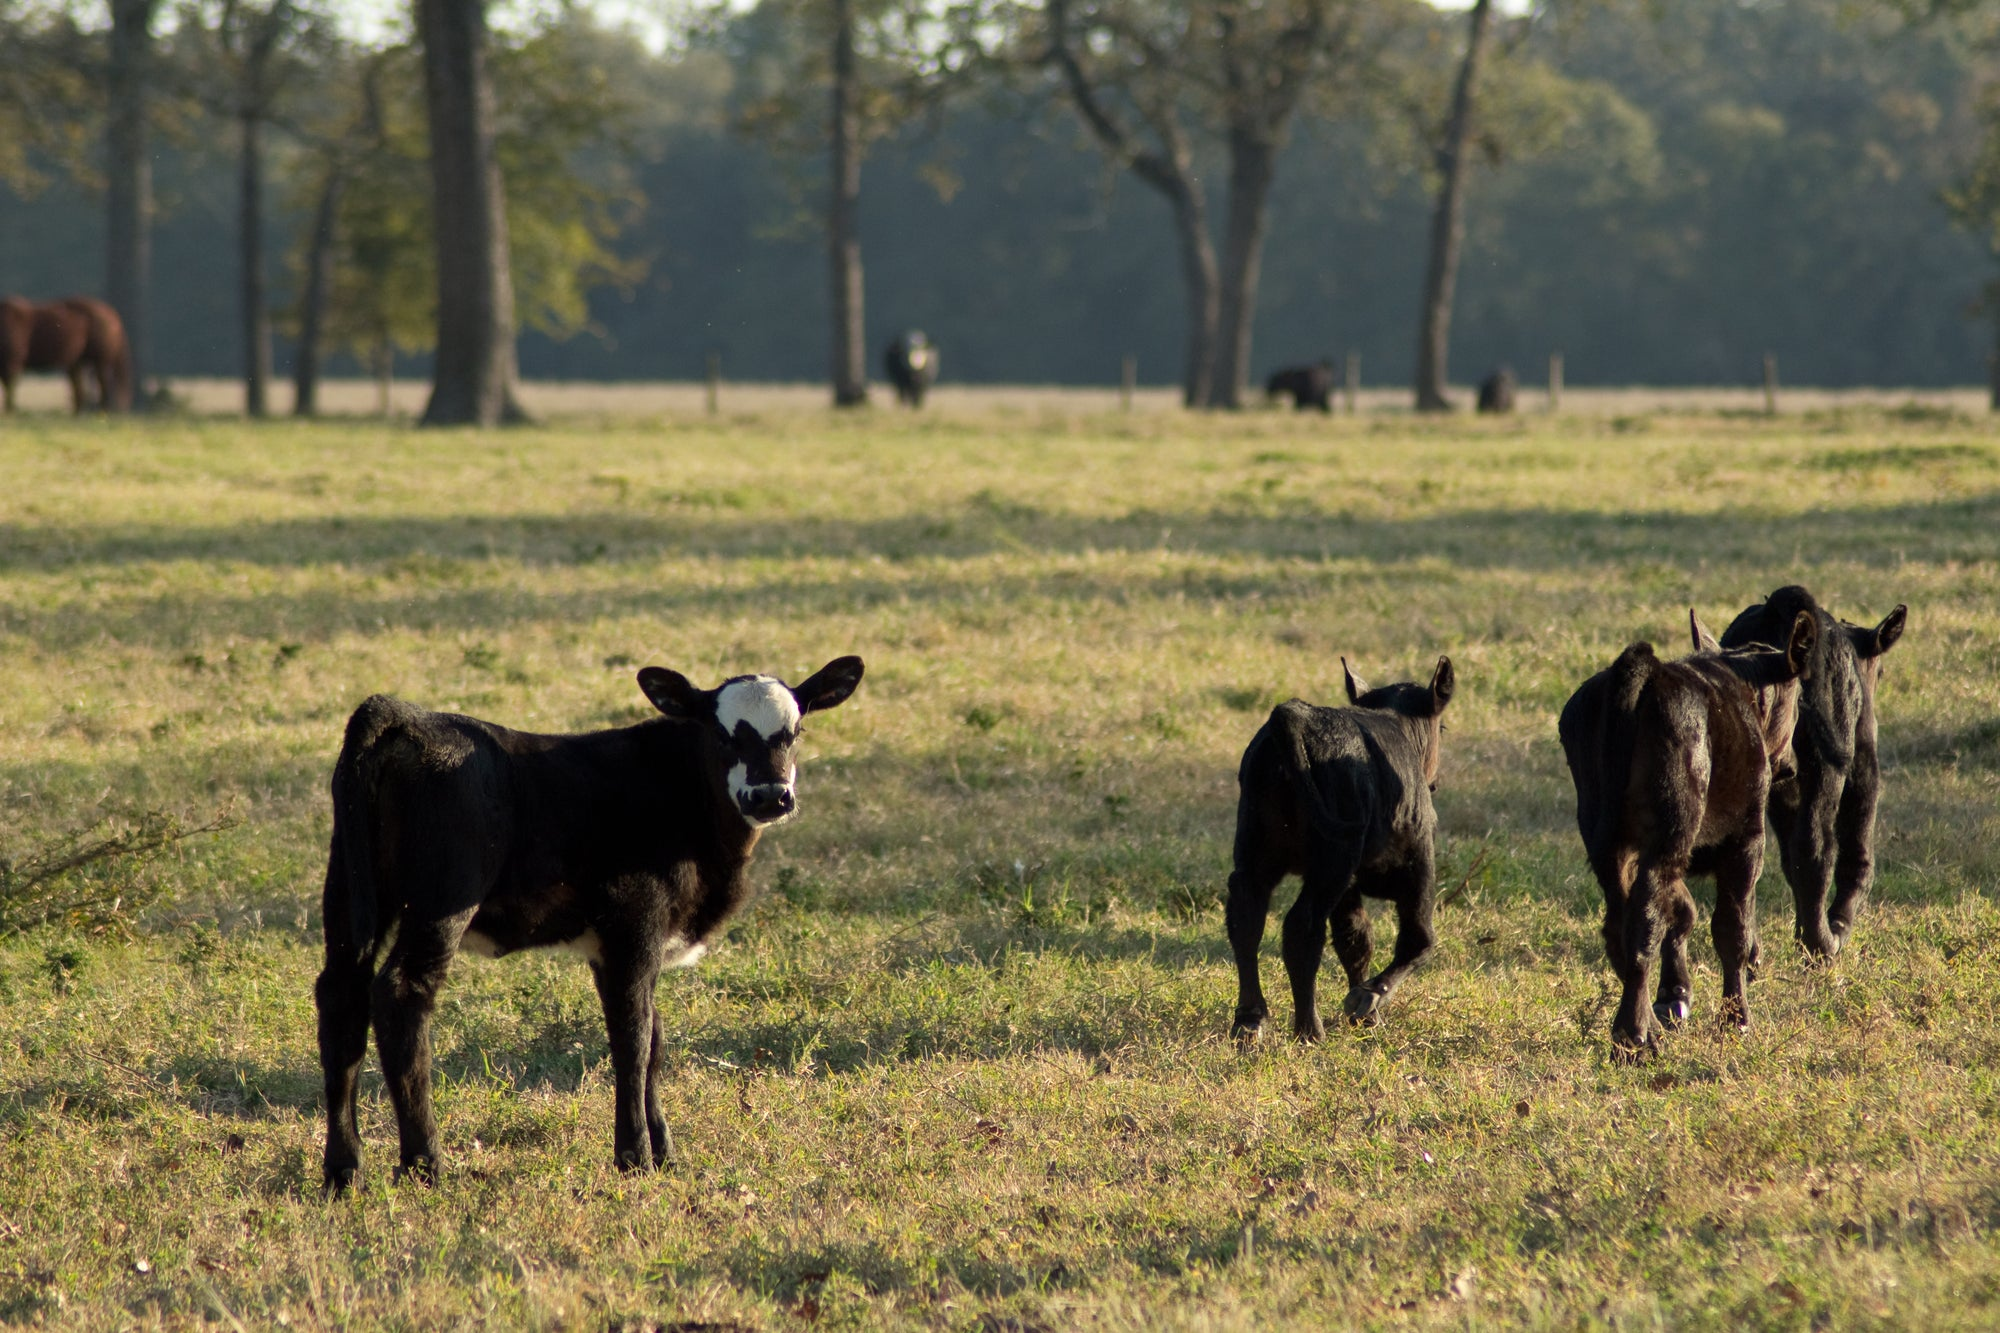 The Economics of Eating Beef from a Small Local Farm